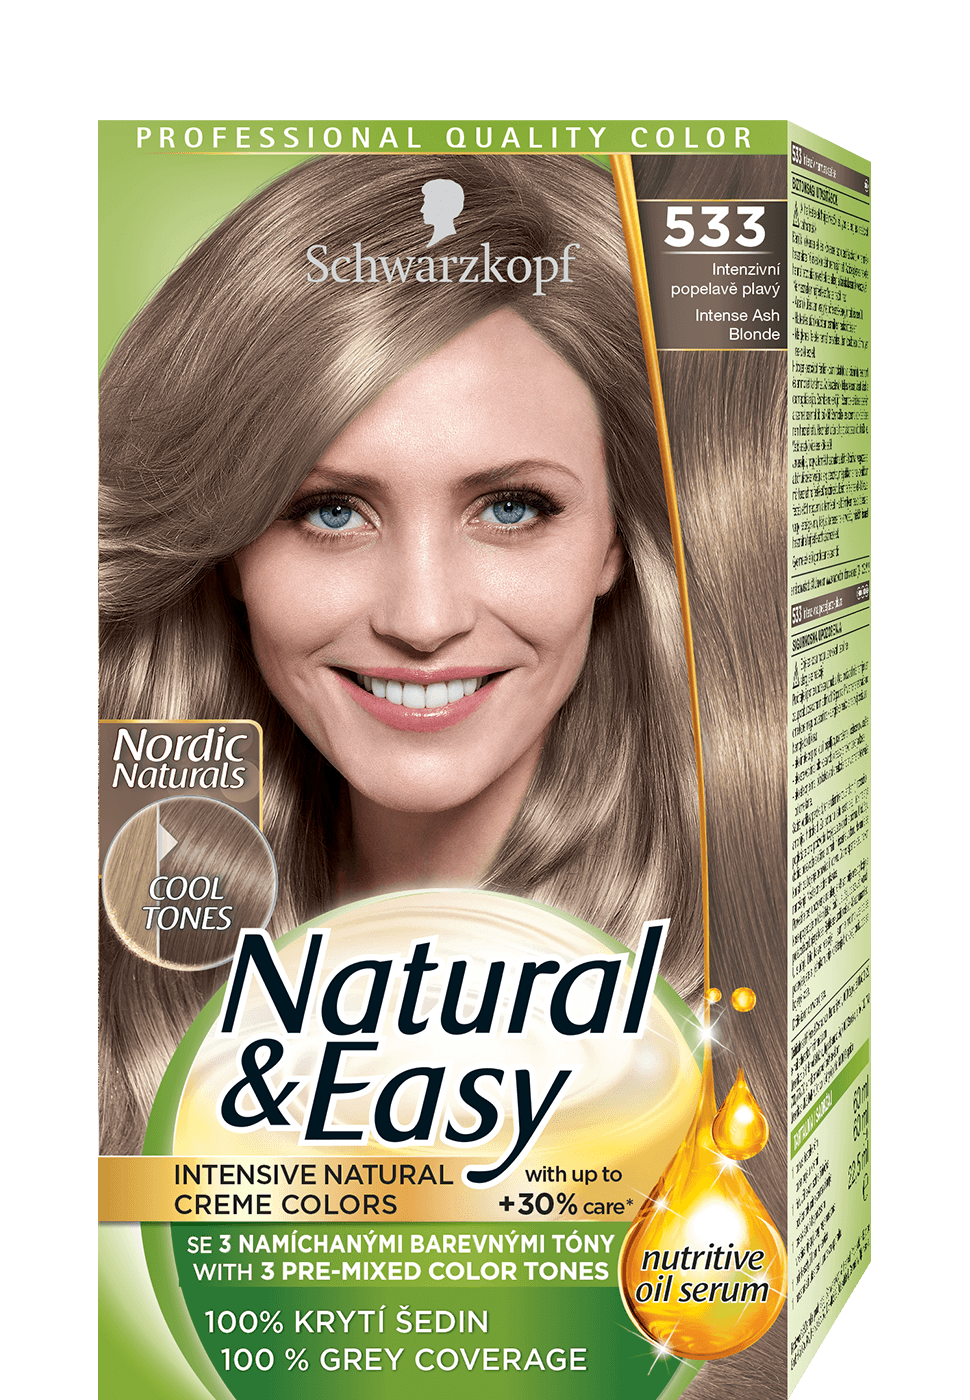 natural_easy_com_blonde_hair_533_intense_ash_blond_970x1400